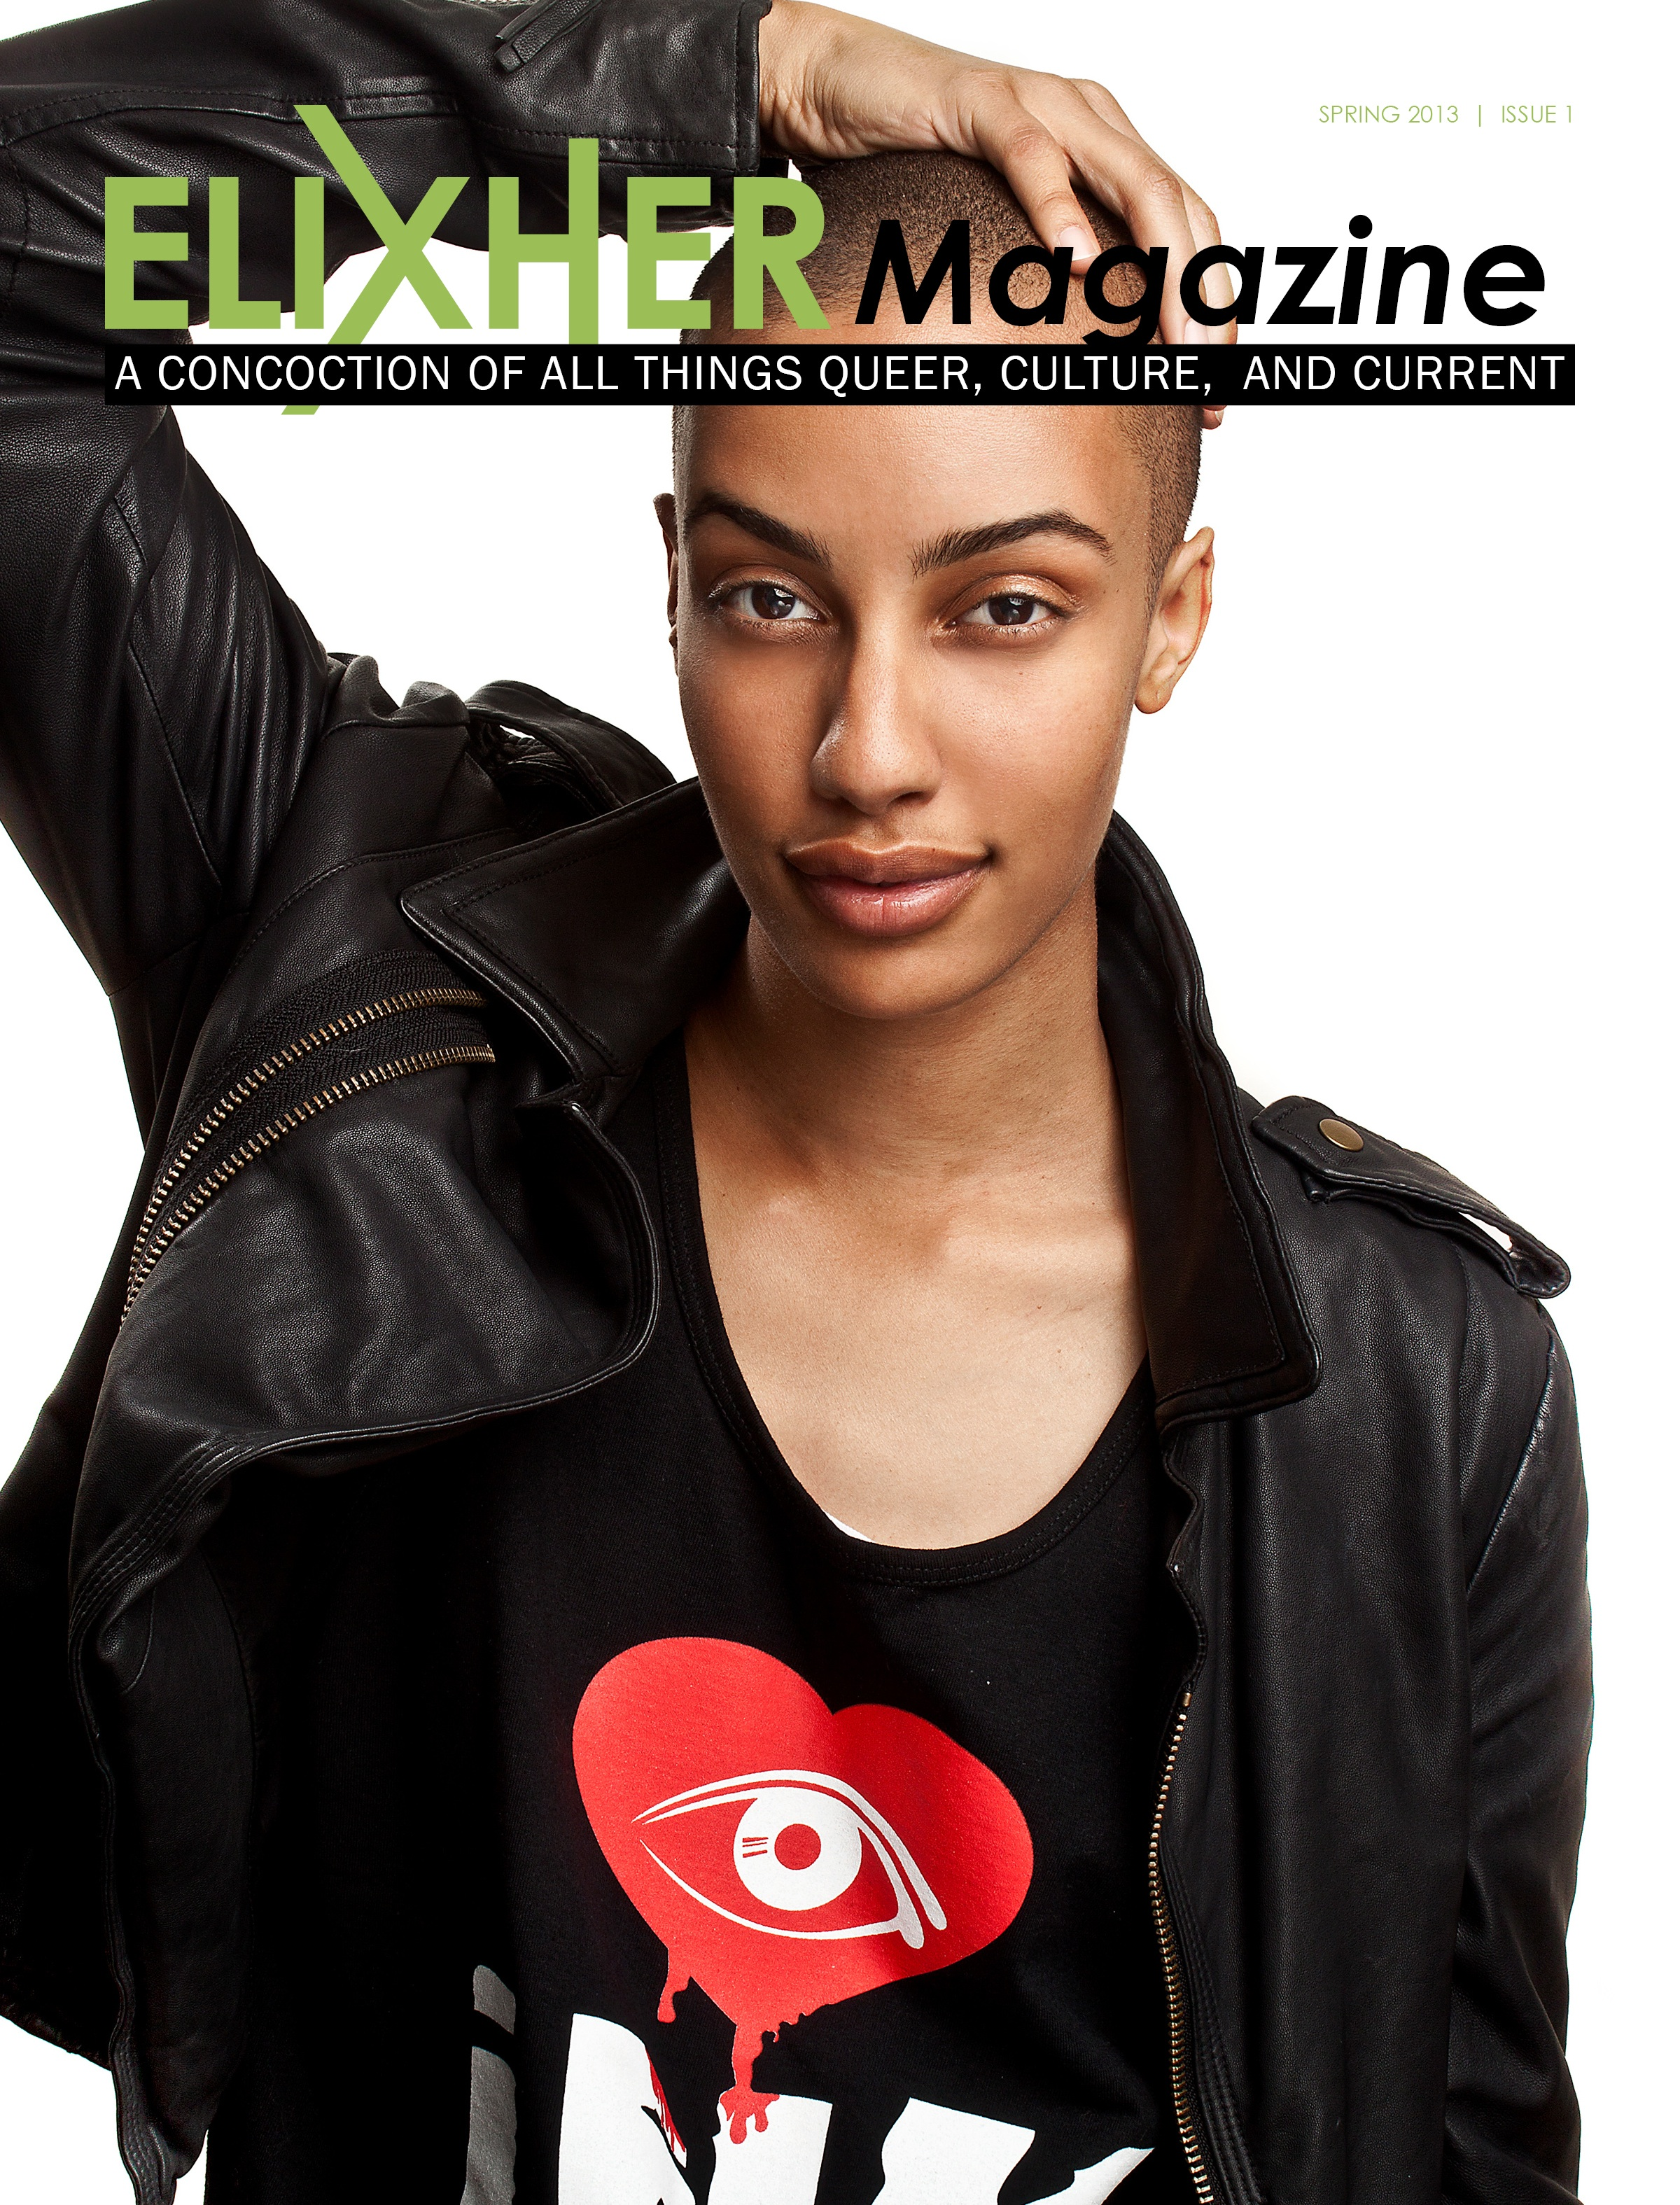 New Digital Magazine Targets Black Lesbian, Bisexual and Transgender Women